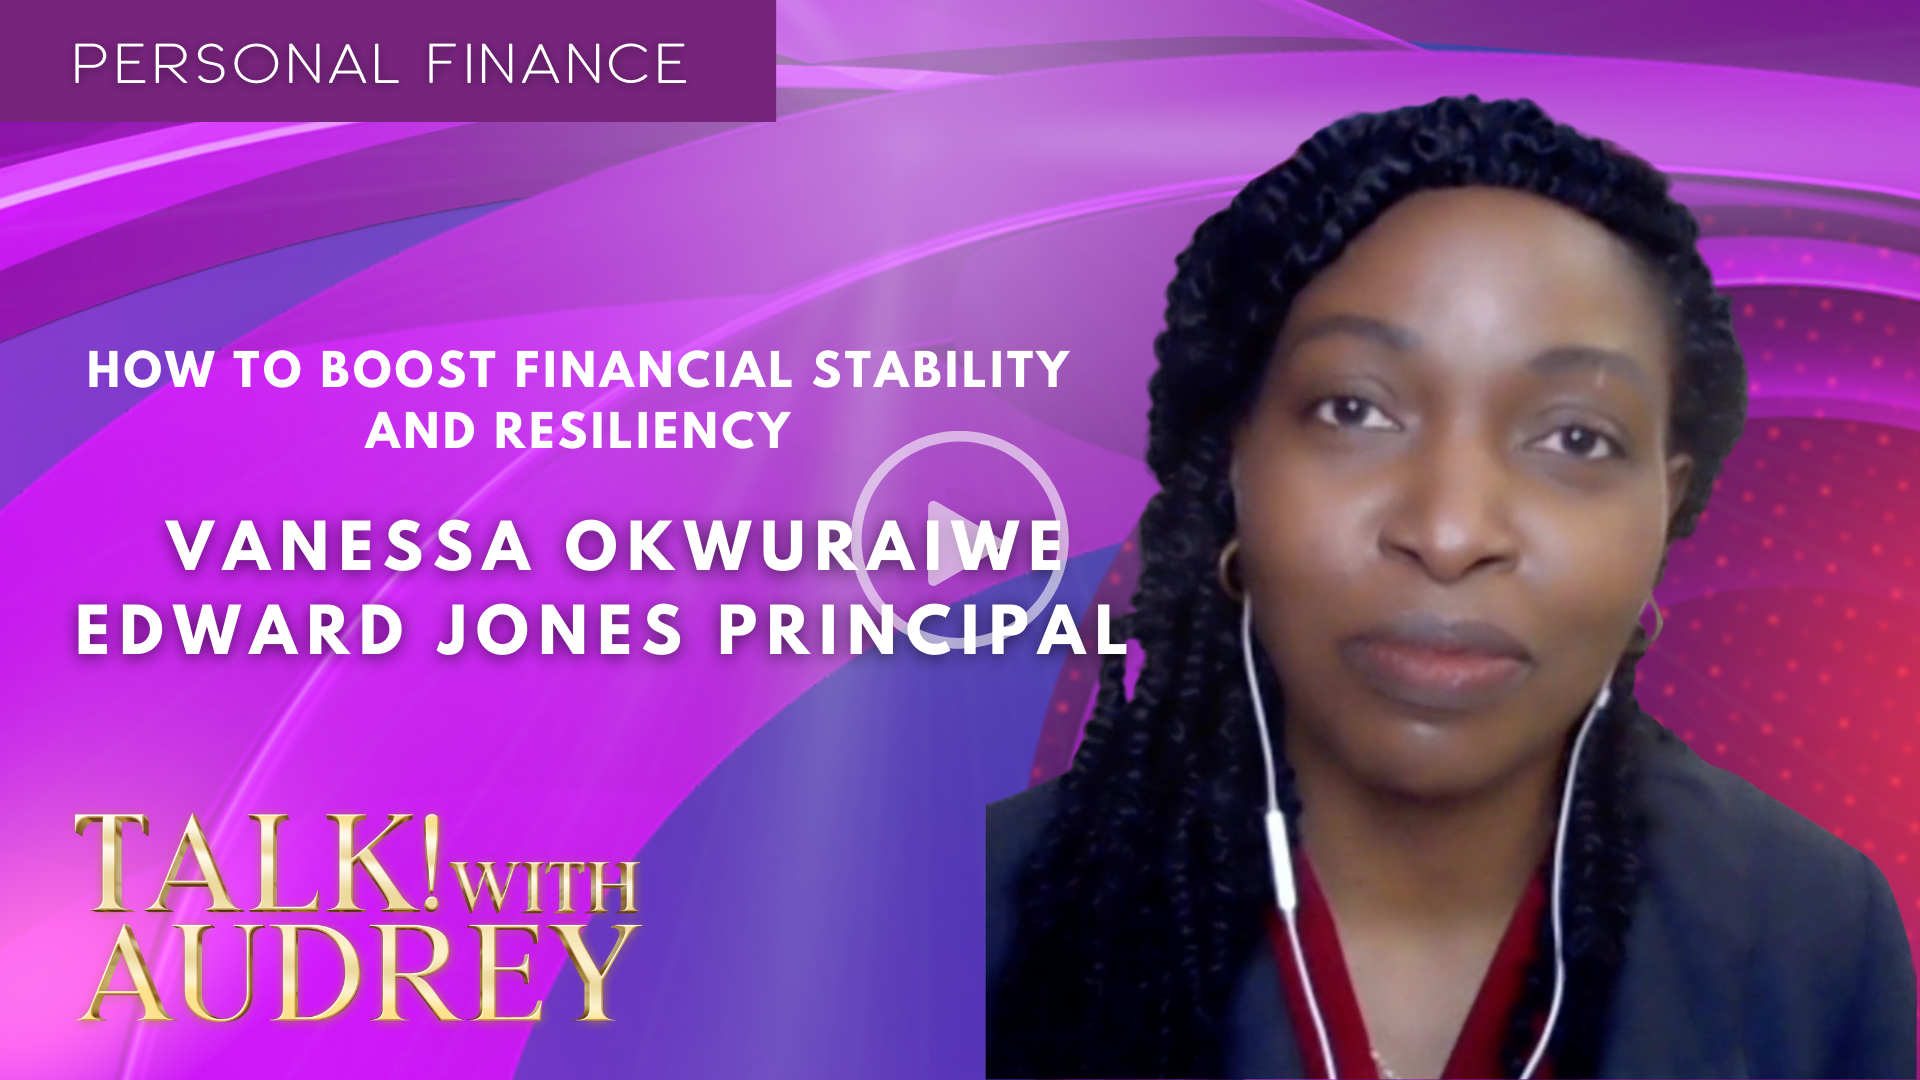 Vanessa Okwuraiwe – How to Boost Financial Stability and Resiliency